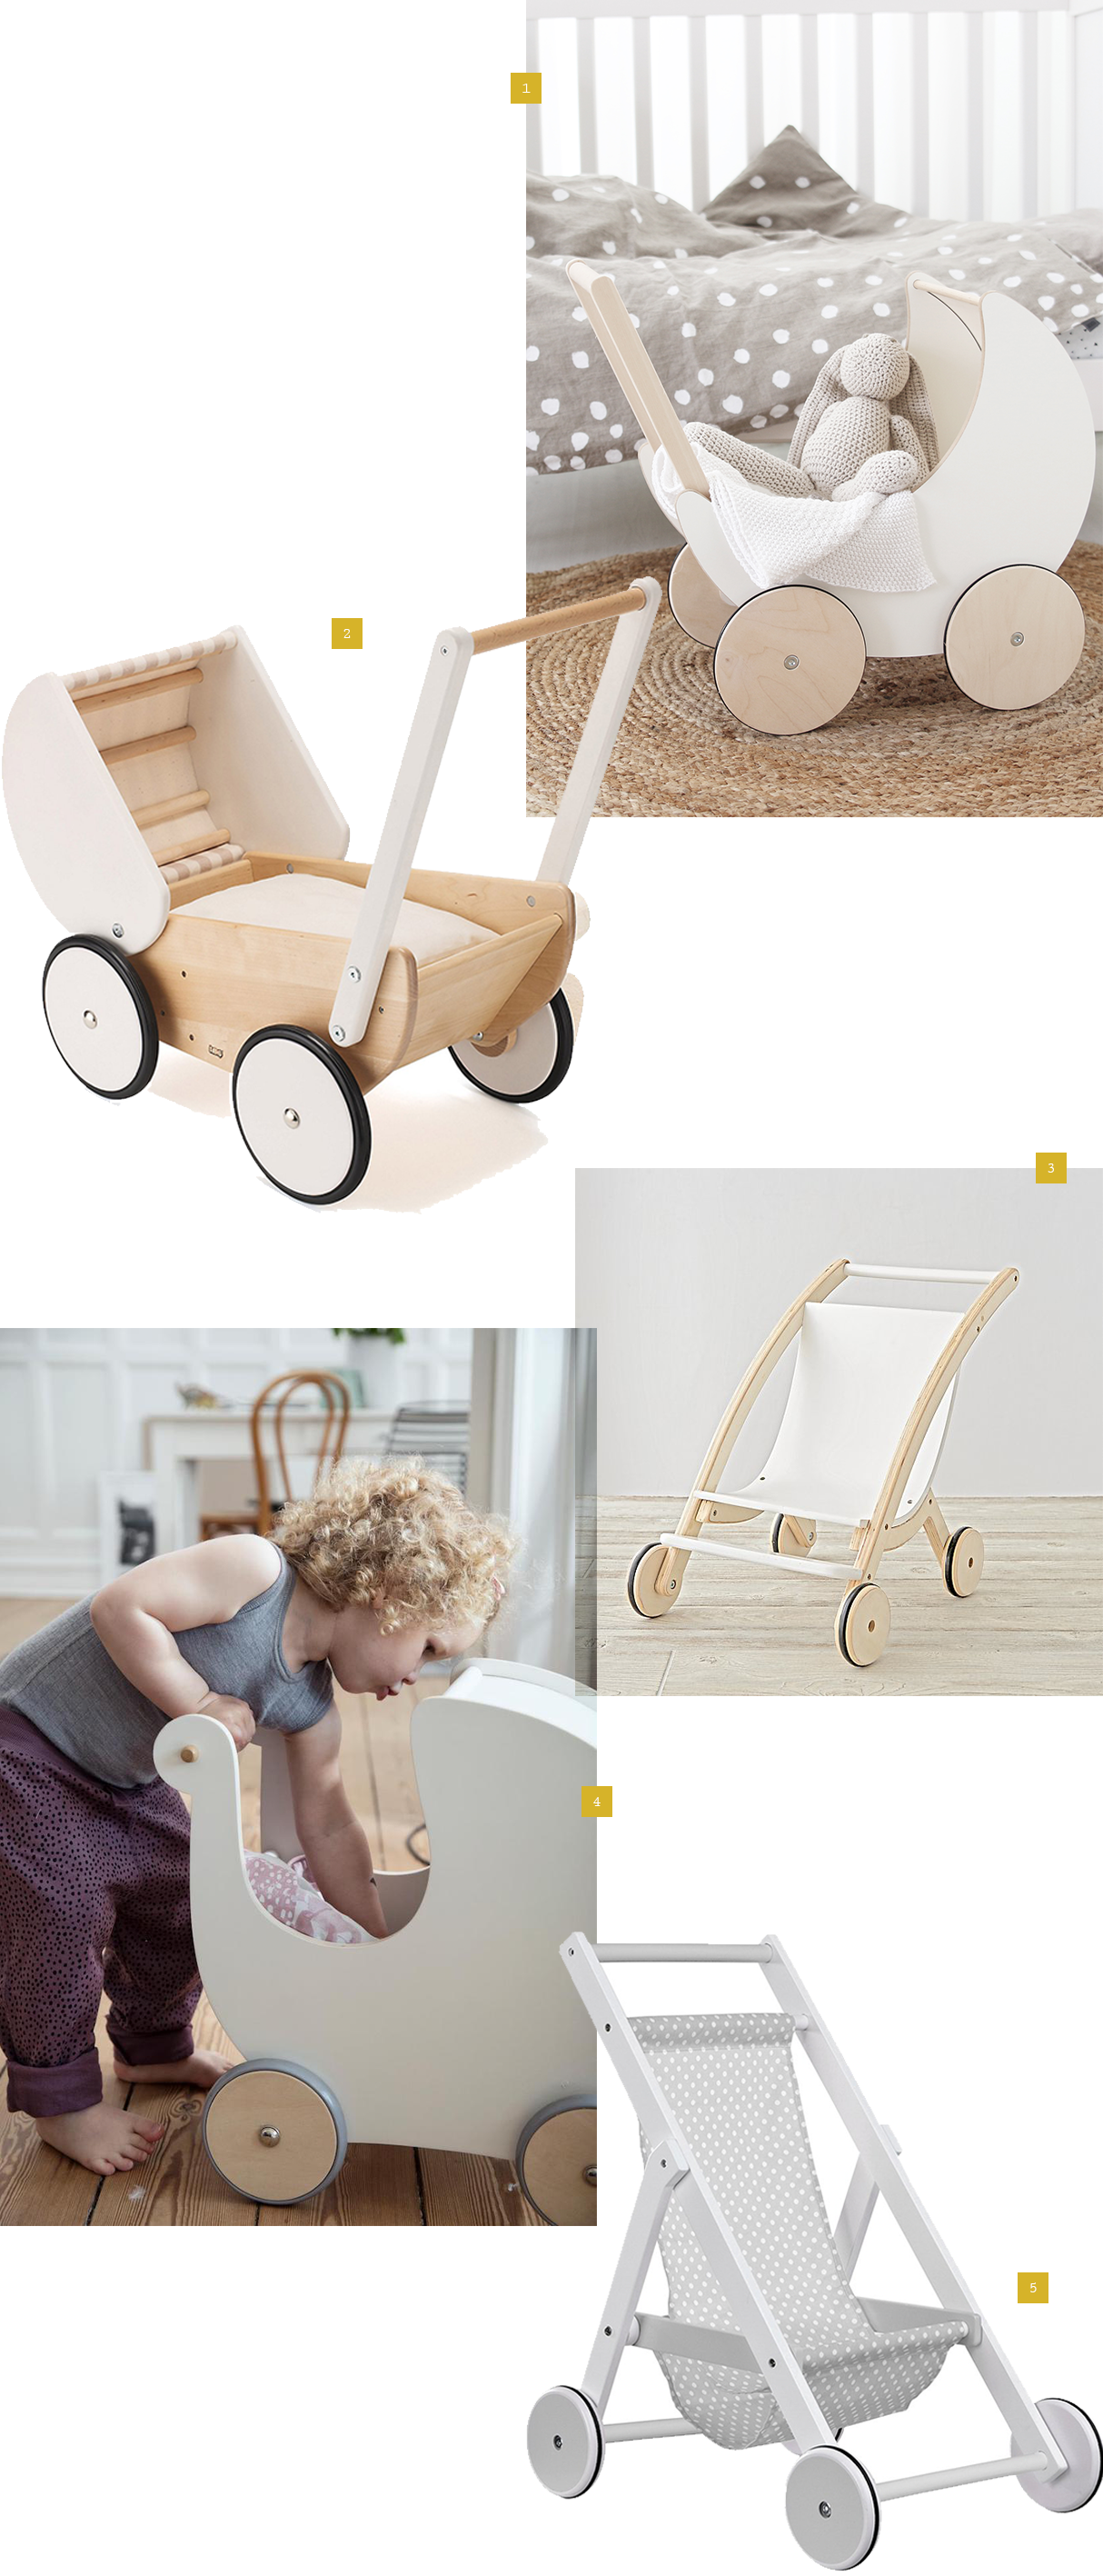 5 of the best wooden unisex gender-neutral white wooden pushchairs and prams for little boys and girls as gifts for Christmas or Birthday